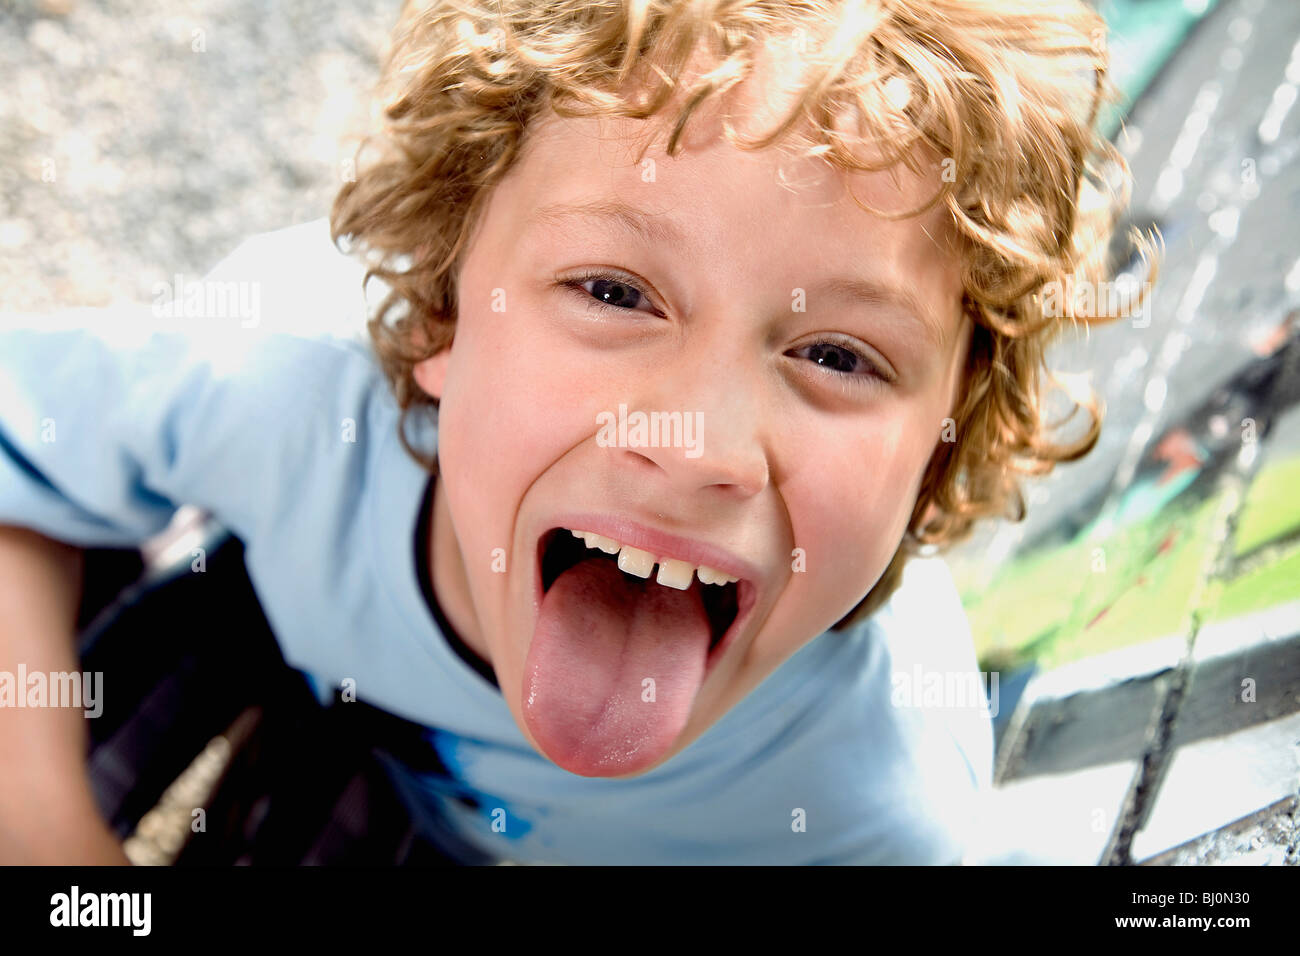 portrait of young boy sticking out tongue - Stock Image